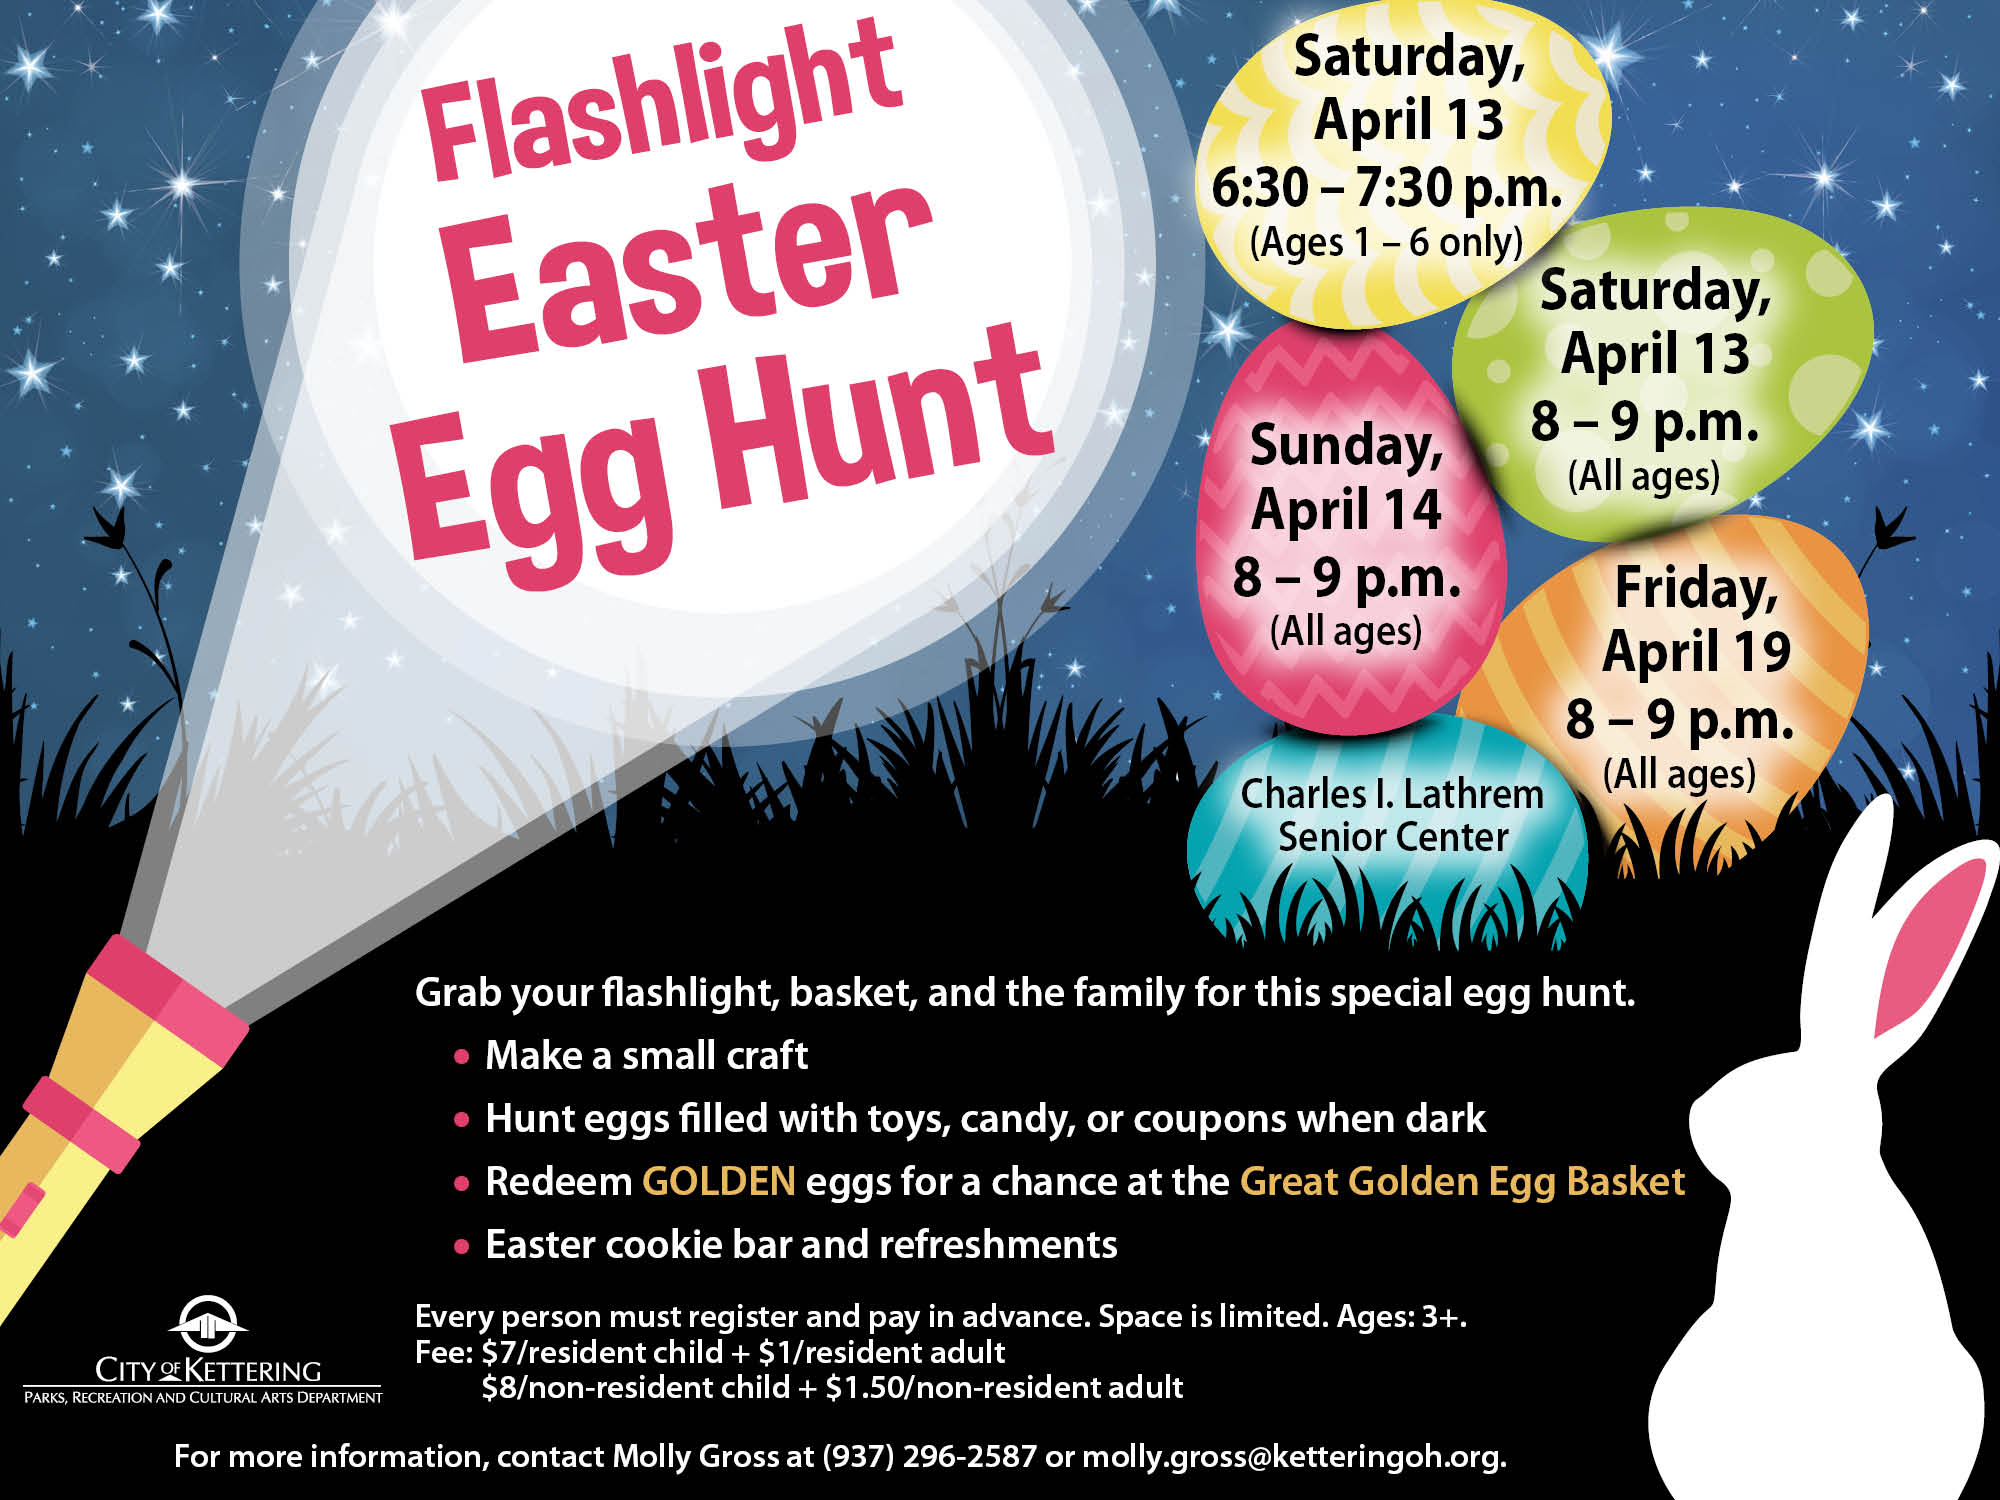 flashlight egg hunt poster